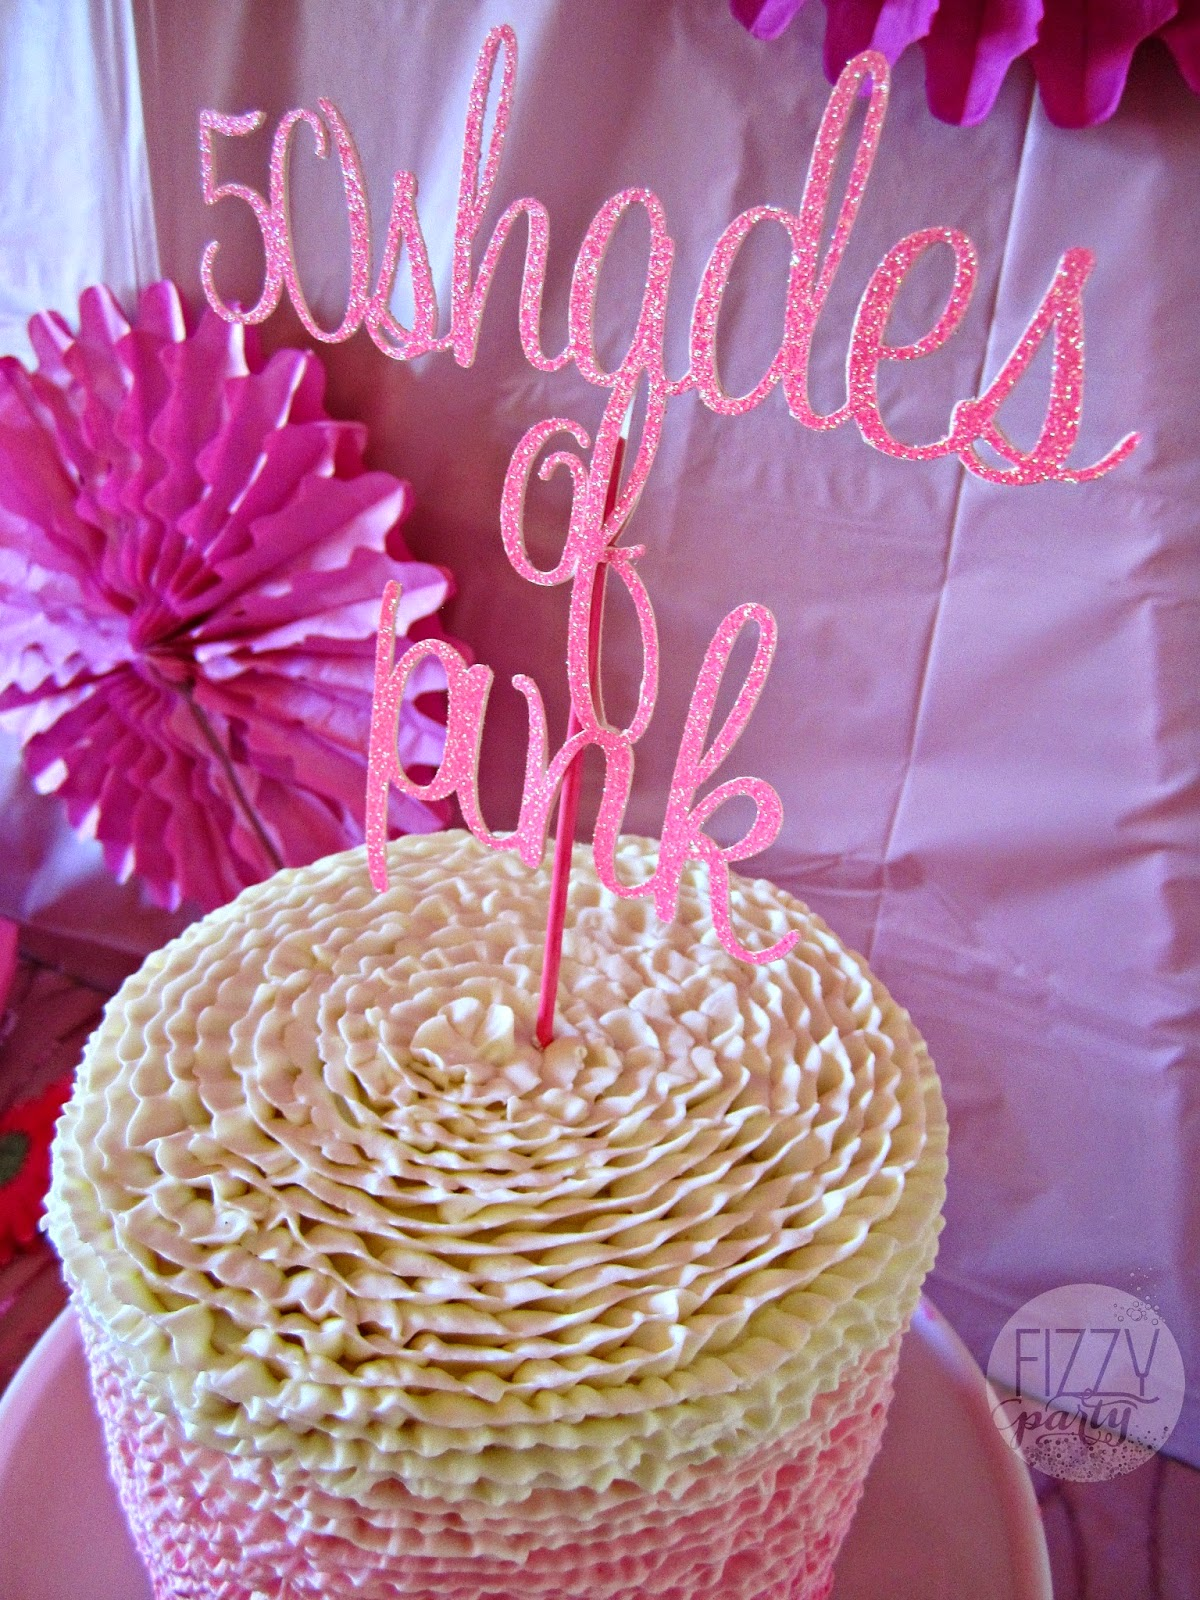 Pink Party cake by Dream Cakes, topper by Bella Grey Designs